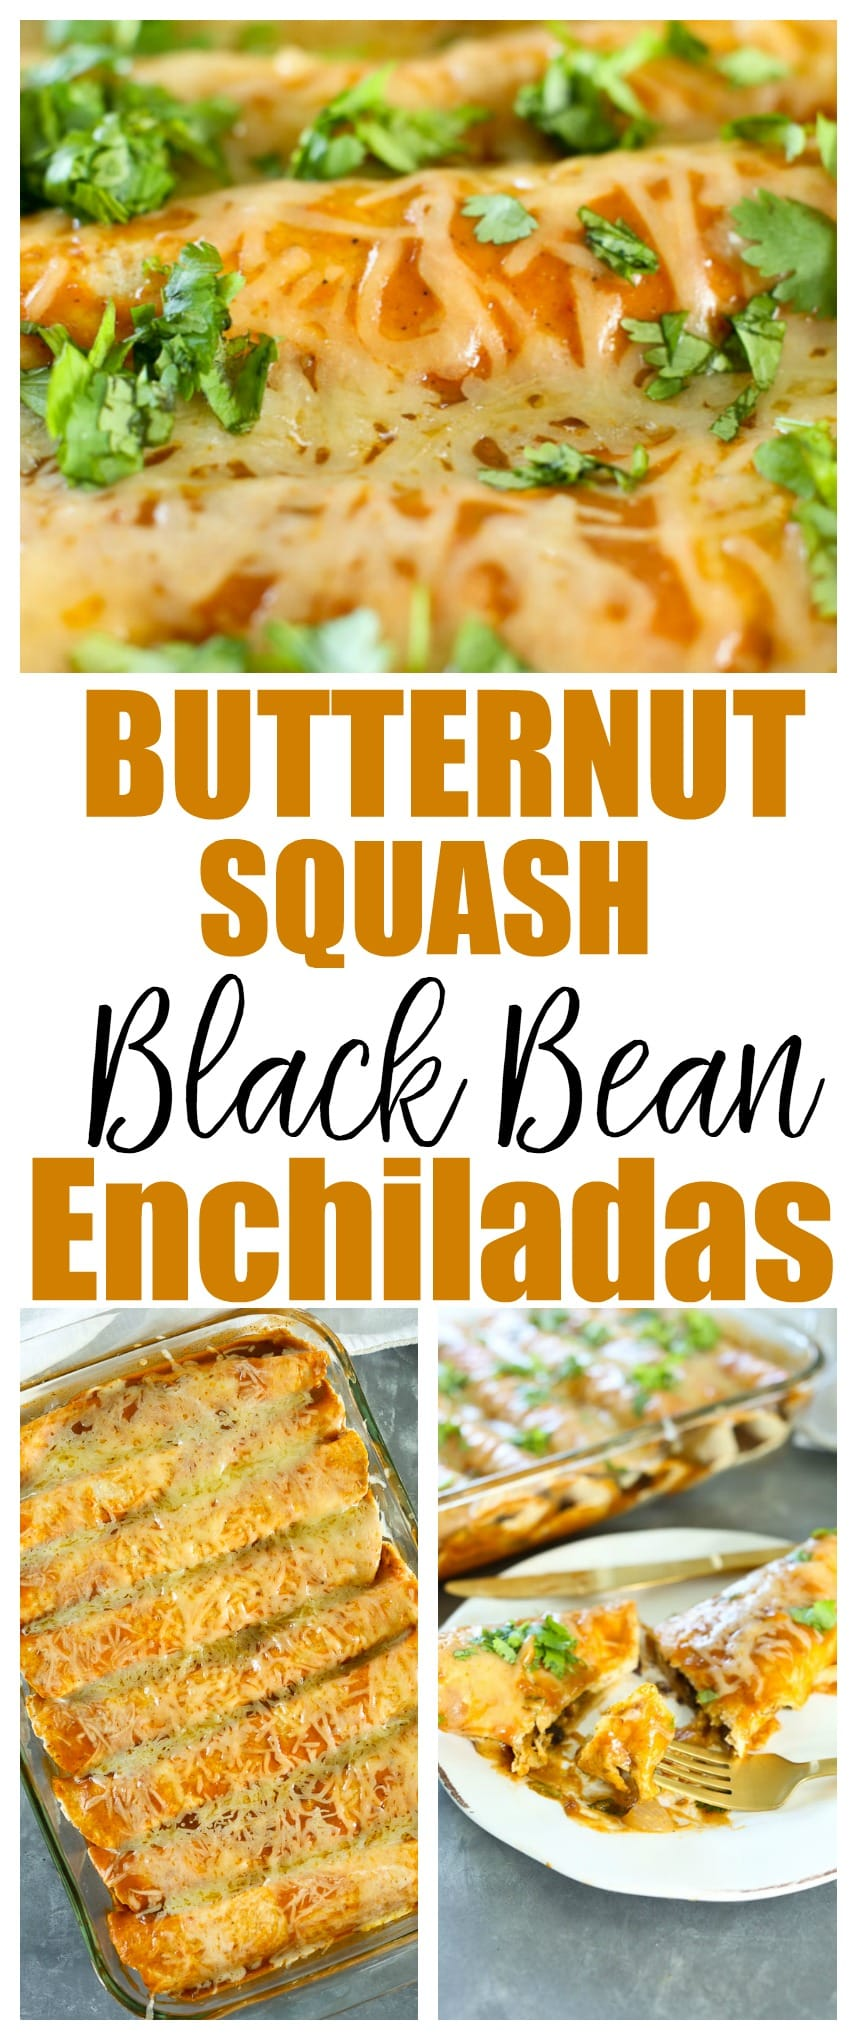 Butternut Squash Black Bean Enchiladas recipe. 25 minutes total for this easy and healthy weeknight dinner recipe! #vegetarian #healthy #weeknightdinner